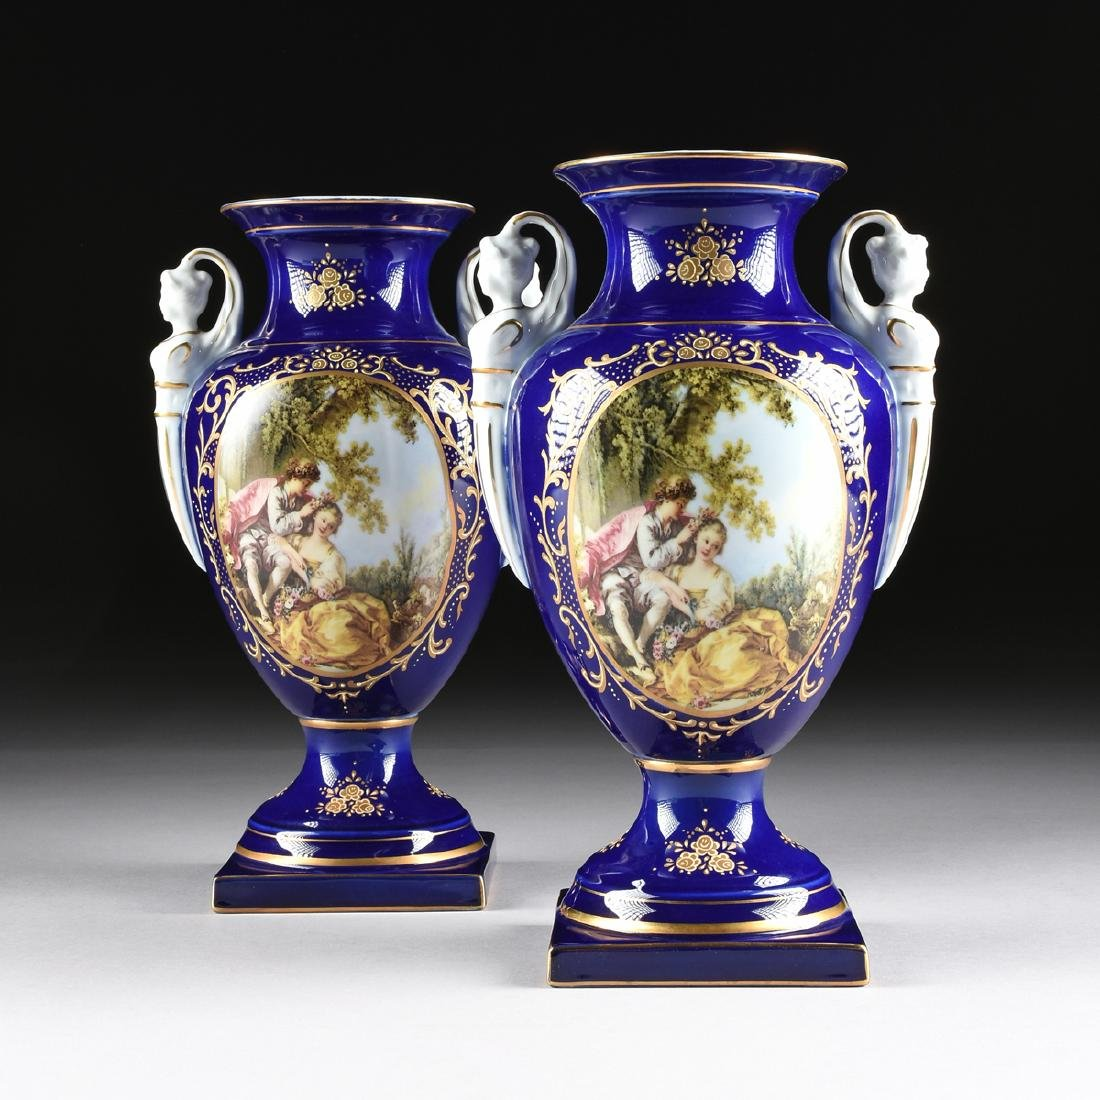 A PAIR OF NEOCLASSICAL STYLE LIMOGES PORCELAIN VASES